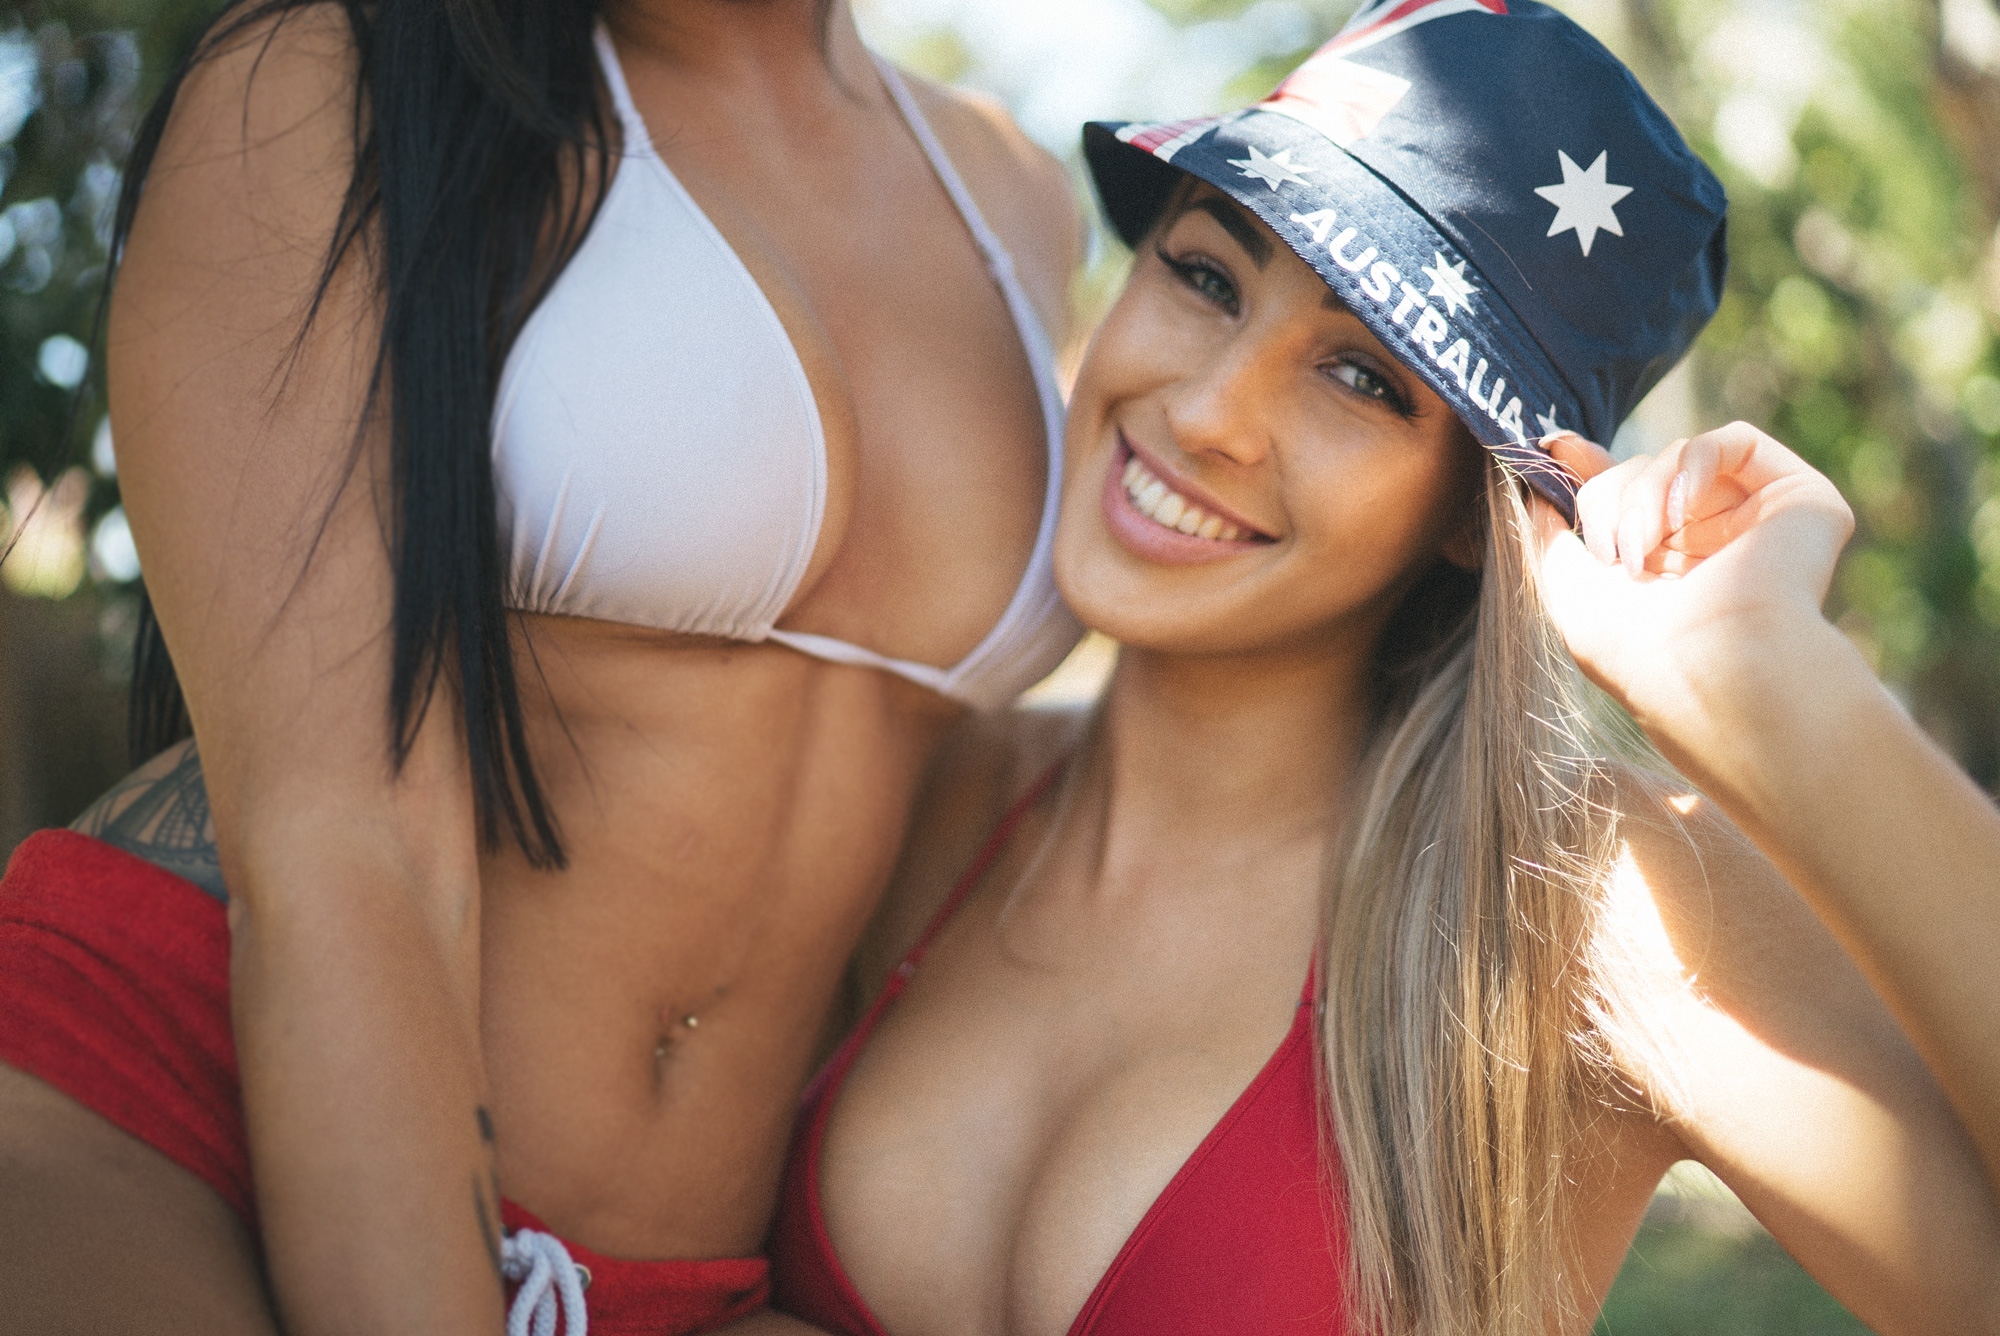 australiaday_babes_garden_shoot_justinfox_l_eyes_2